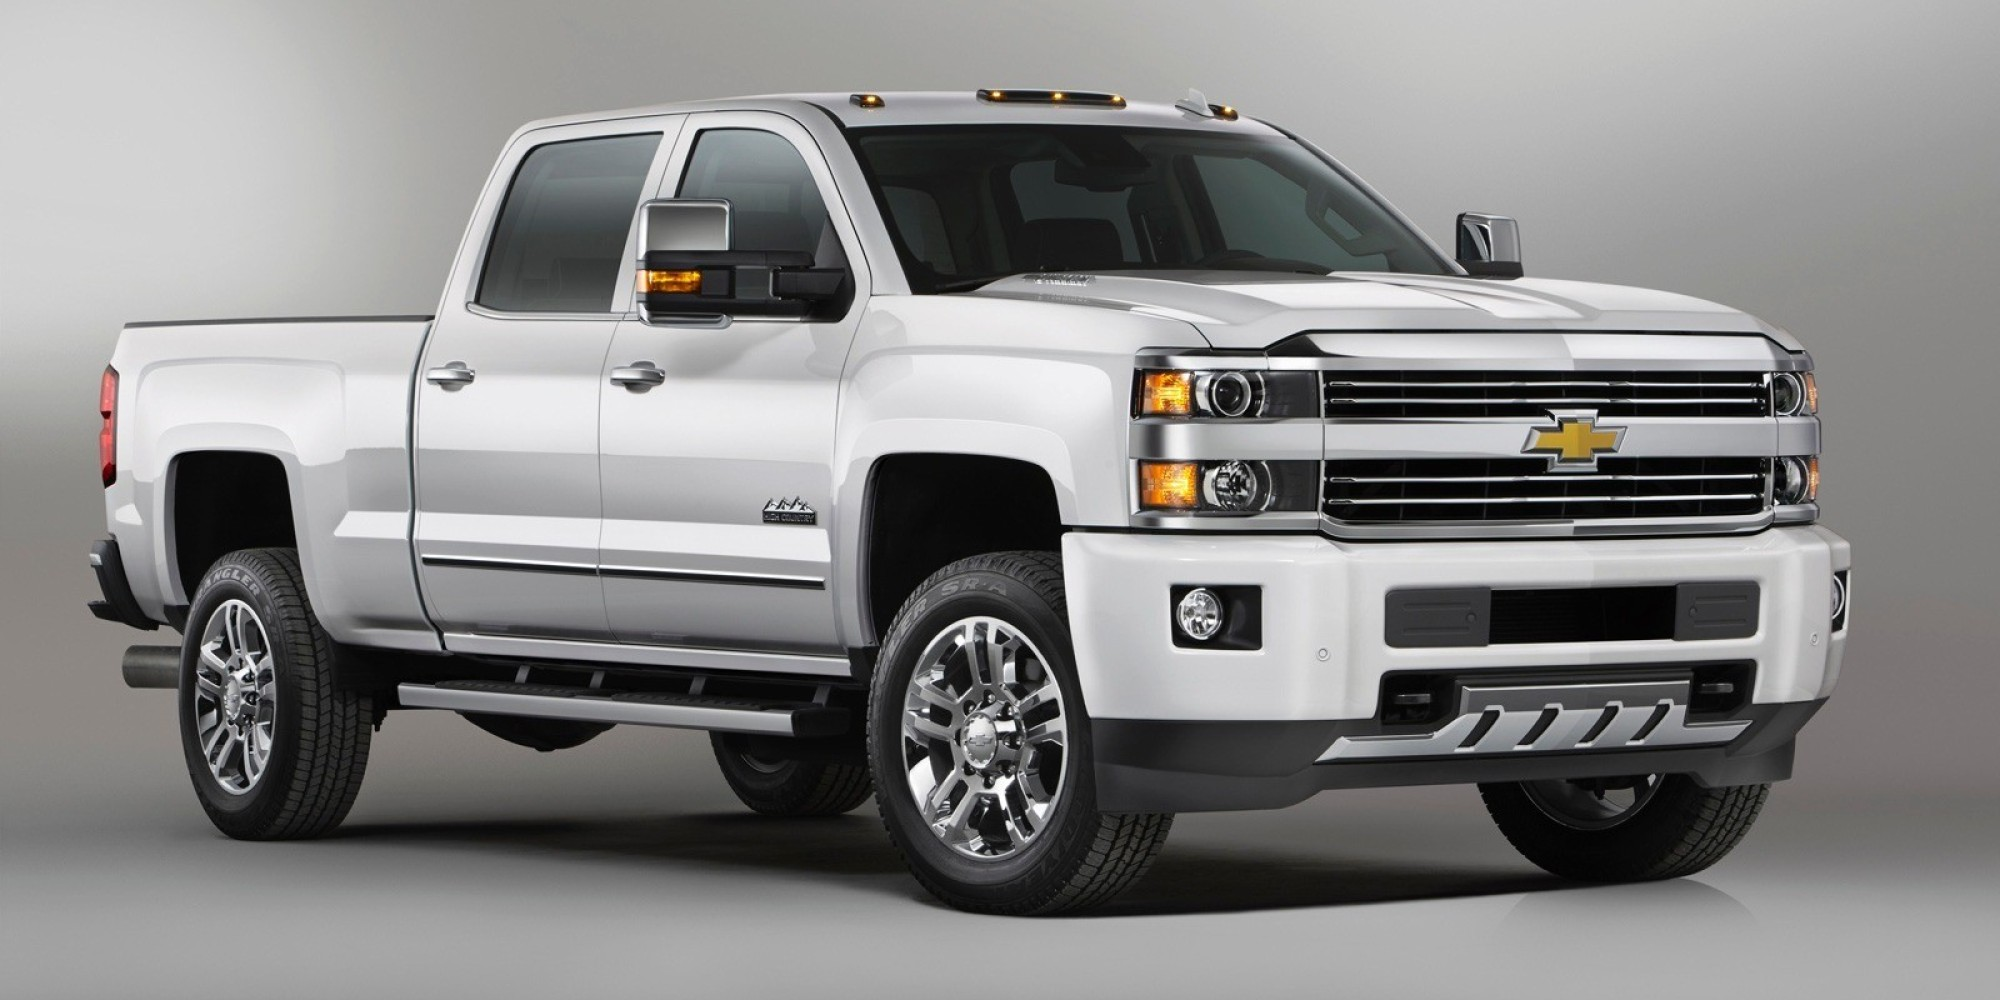 2015 Chevrolet Silverado 1500 Double Cab >> Chevrolet Silverado High Country 2015: Prueba de manejo | HuffPost